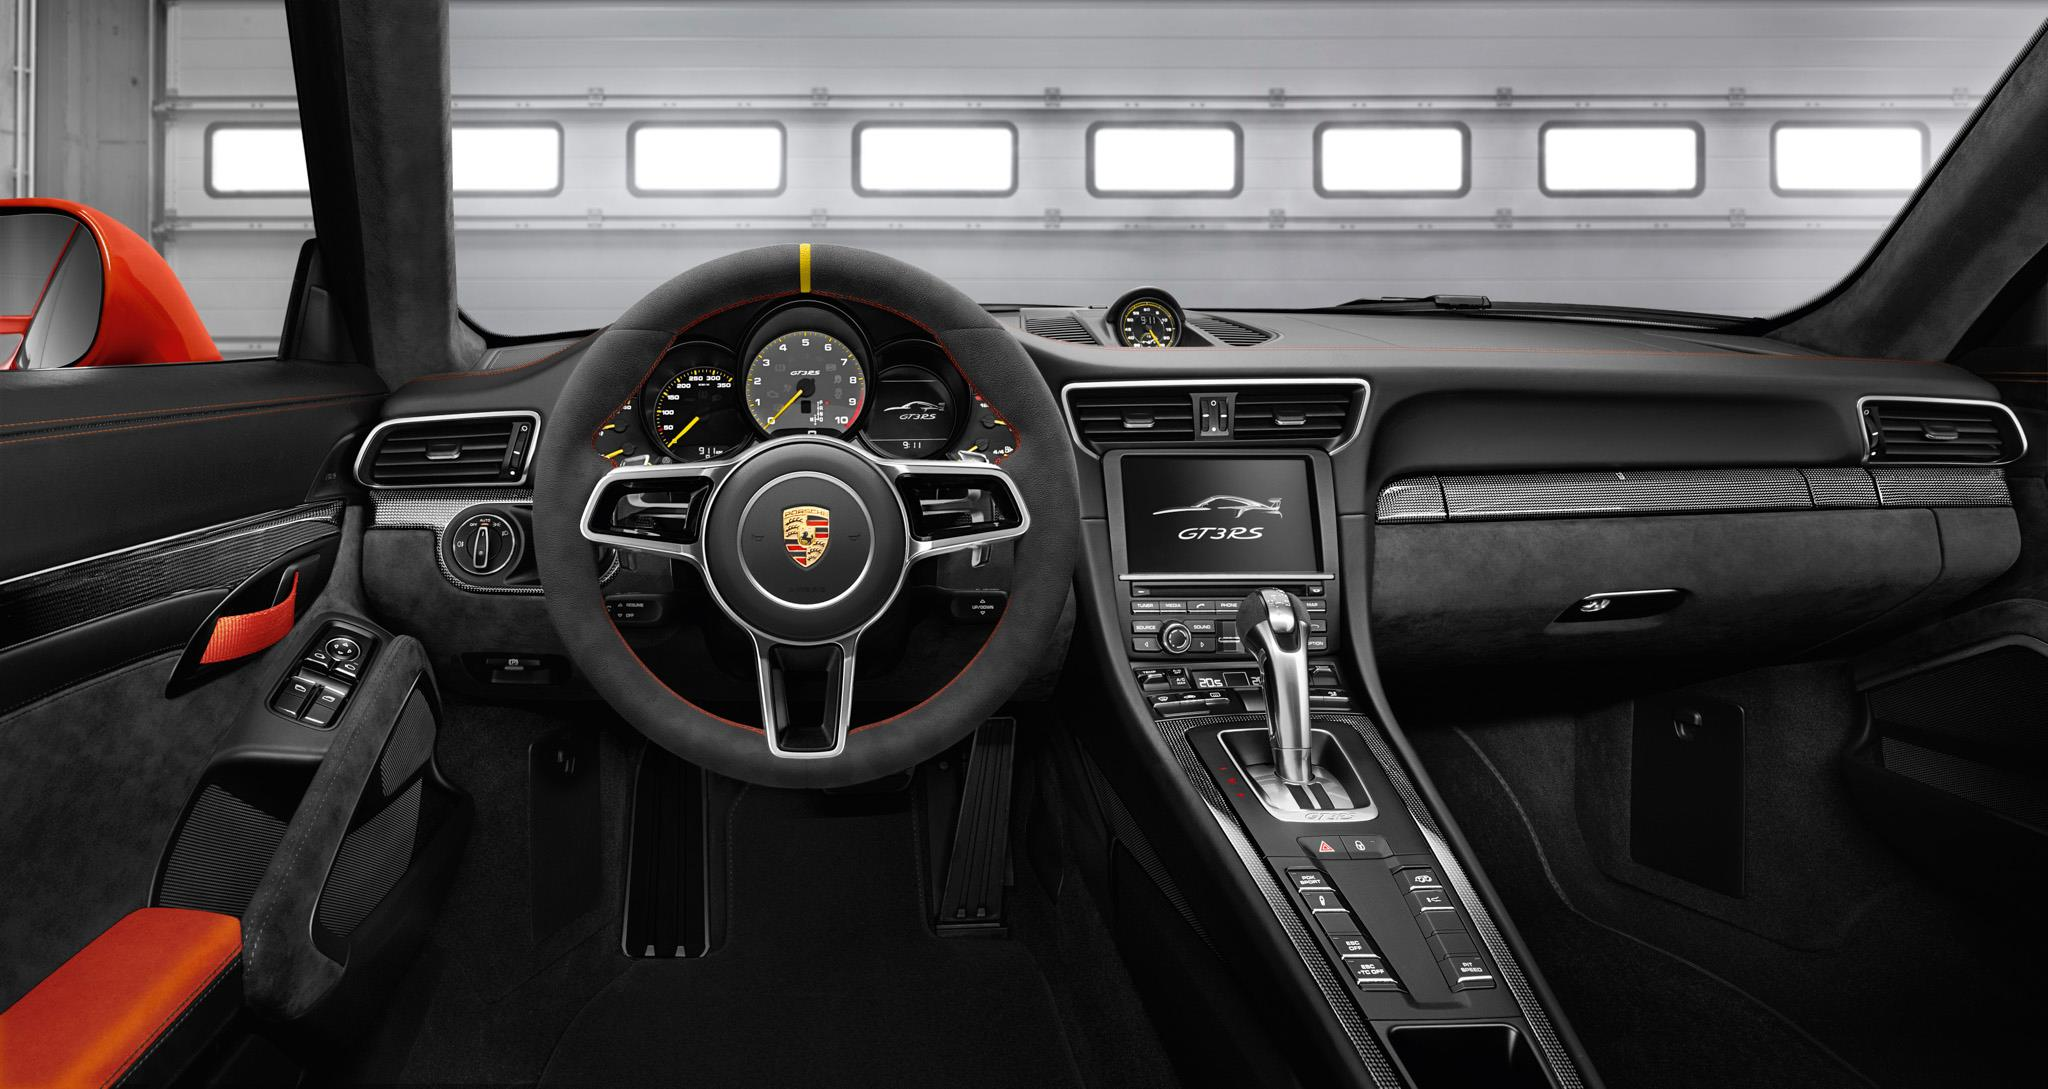 2016 porsche 911 gt3 rs interior detail pictures for Porsche 911 interieur